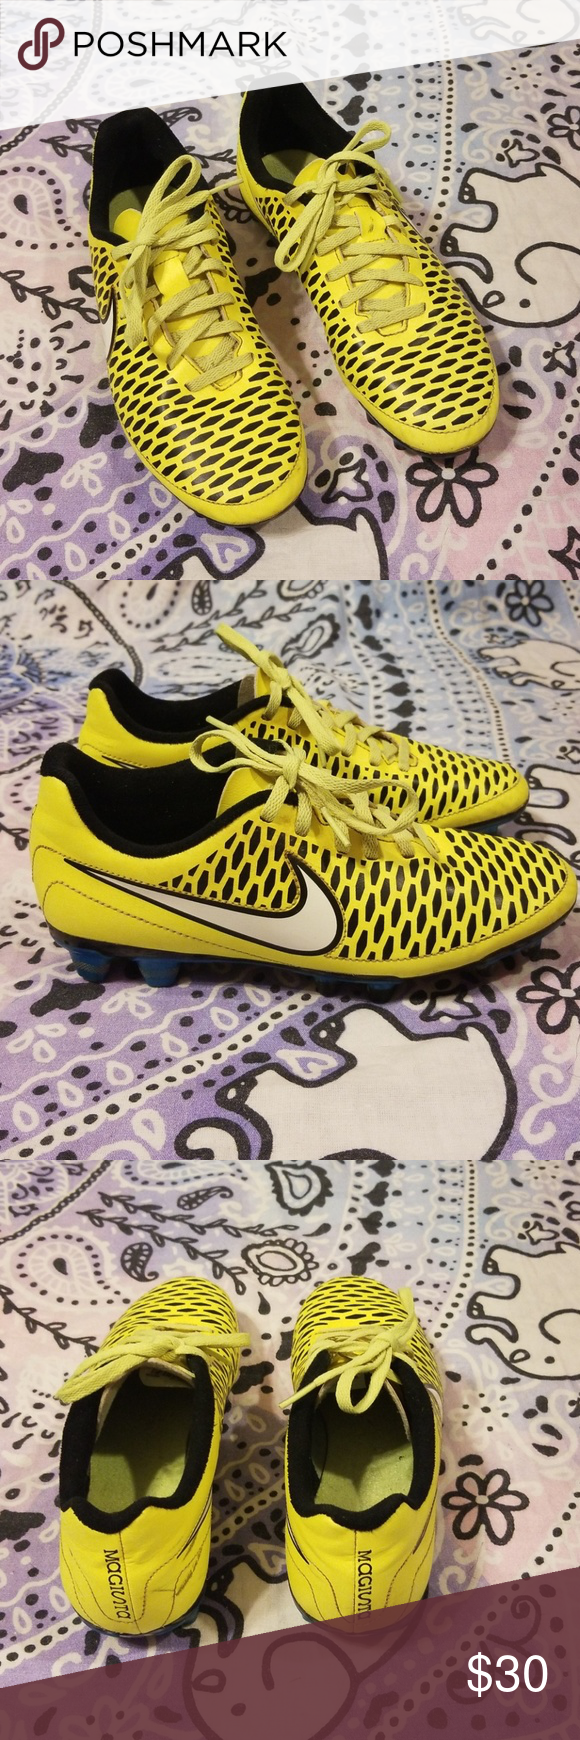 af19a8d63 Nike Magista Soccer Cleats Neon Yellow 7.5 Overall nice condition! Small  scuff toward the back of the shoe. NIKE Magista 658570-700 Nike Shoes  Athletic ...